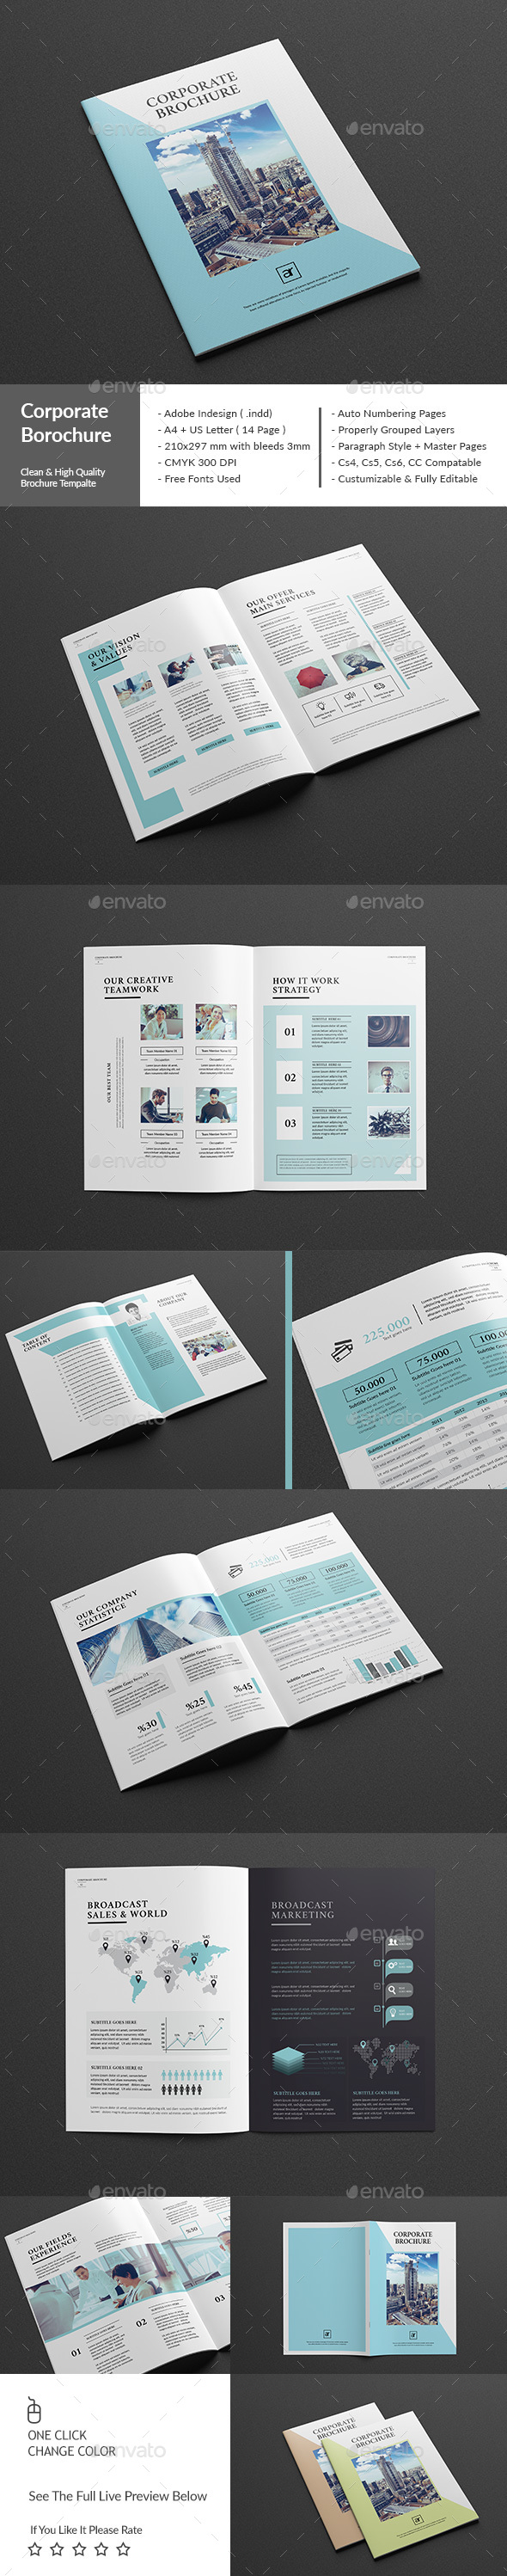 Corporate Brochure A4 Template InDesign INDD #design Download: http ...